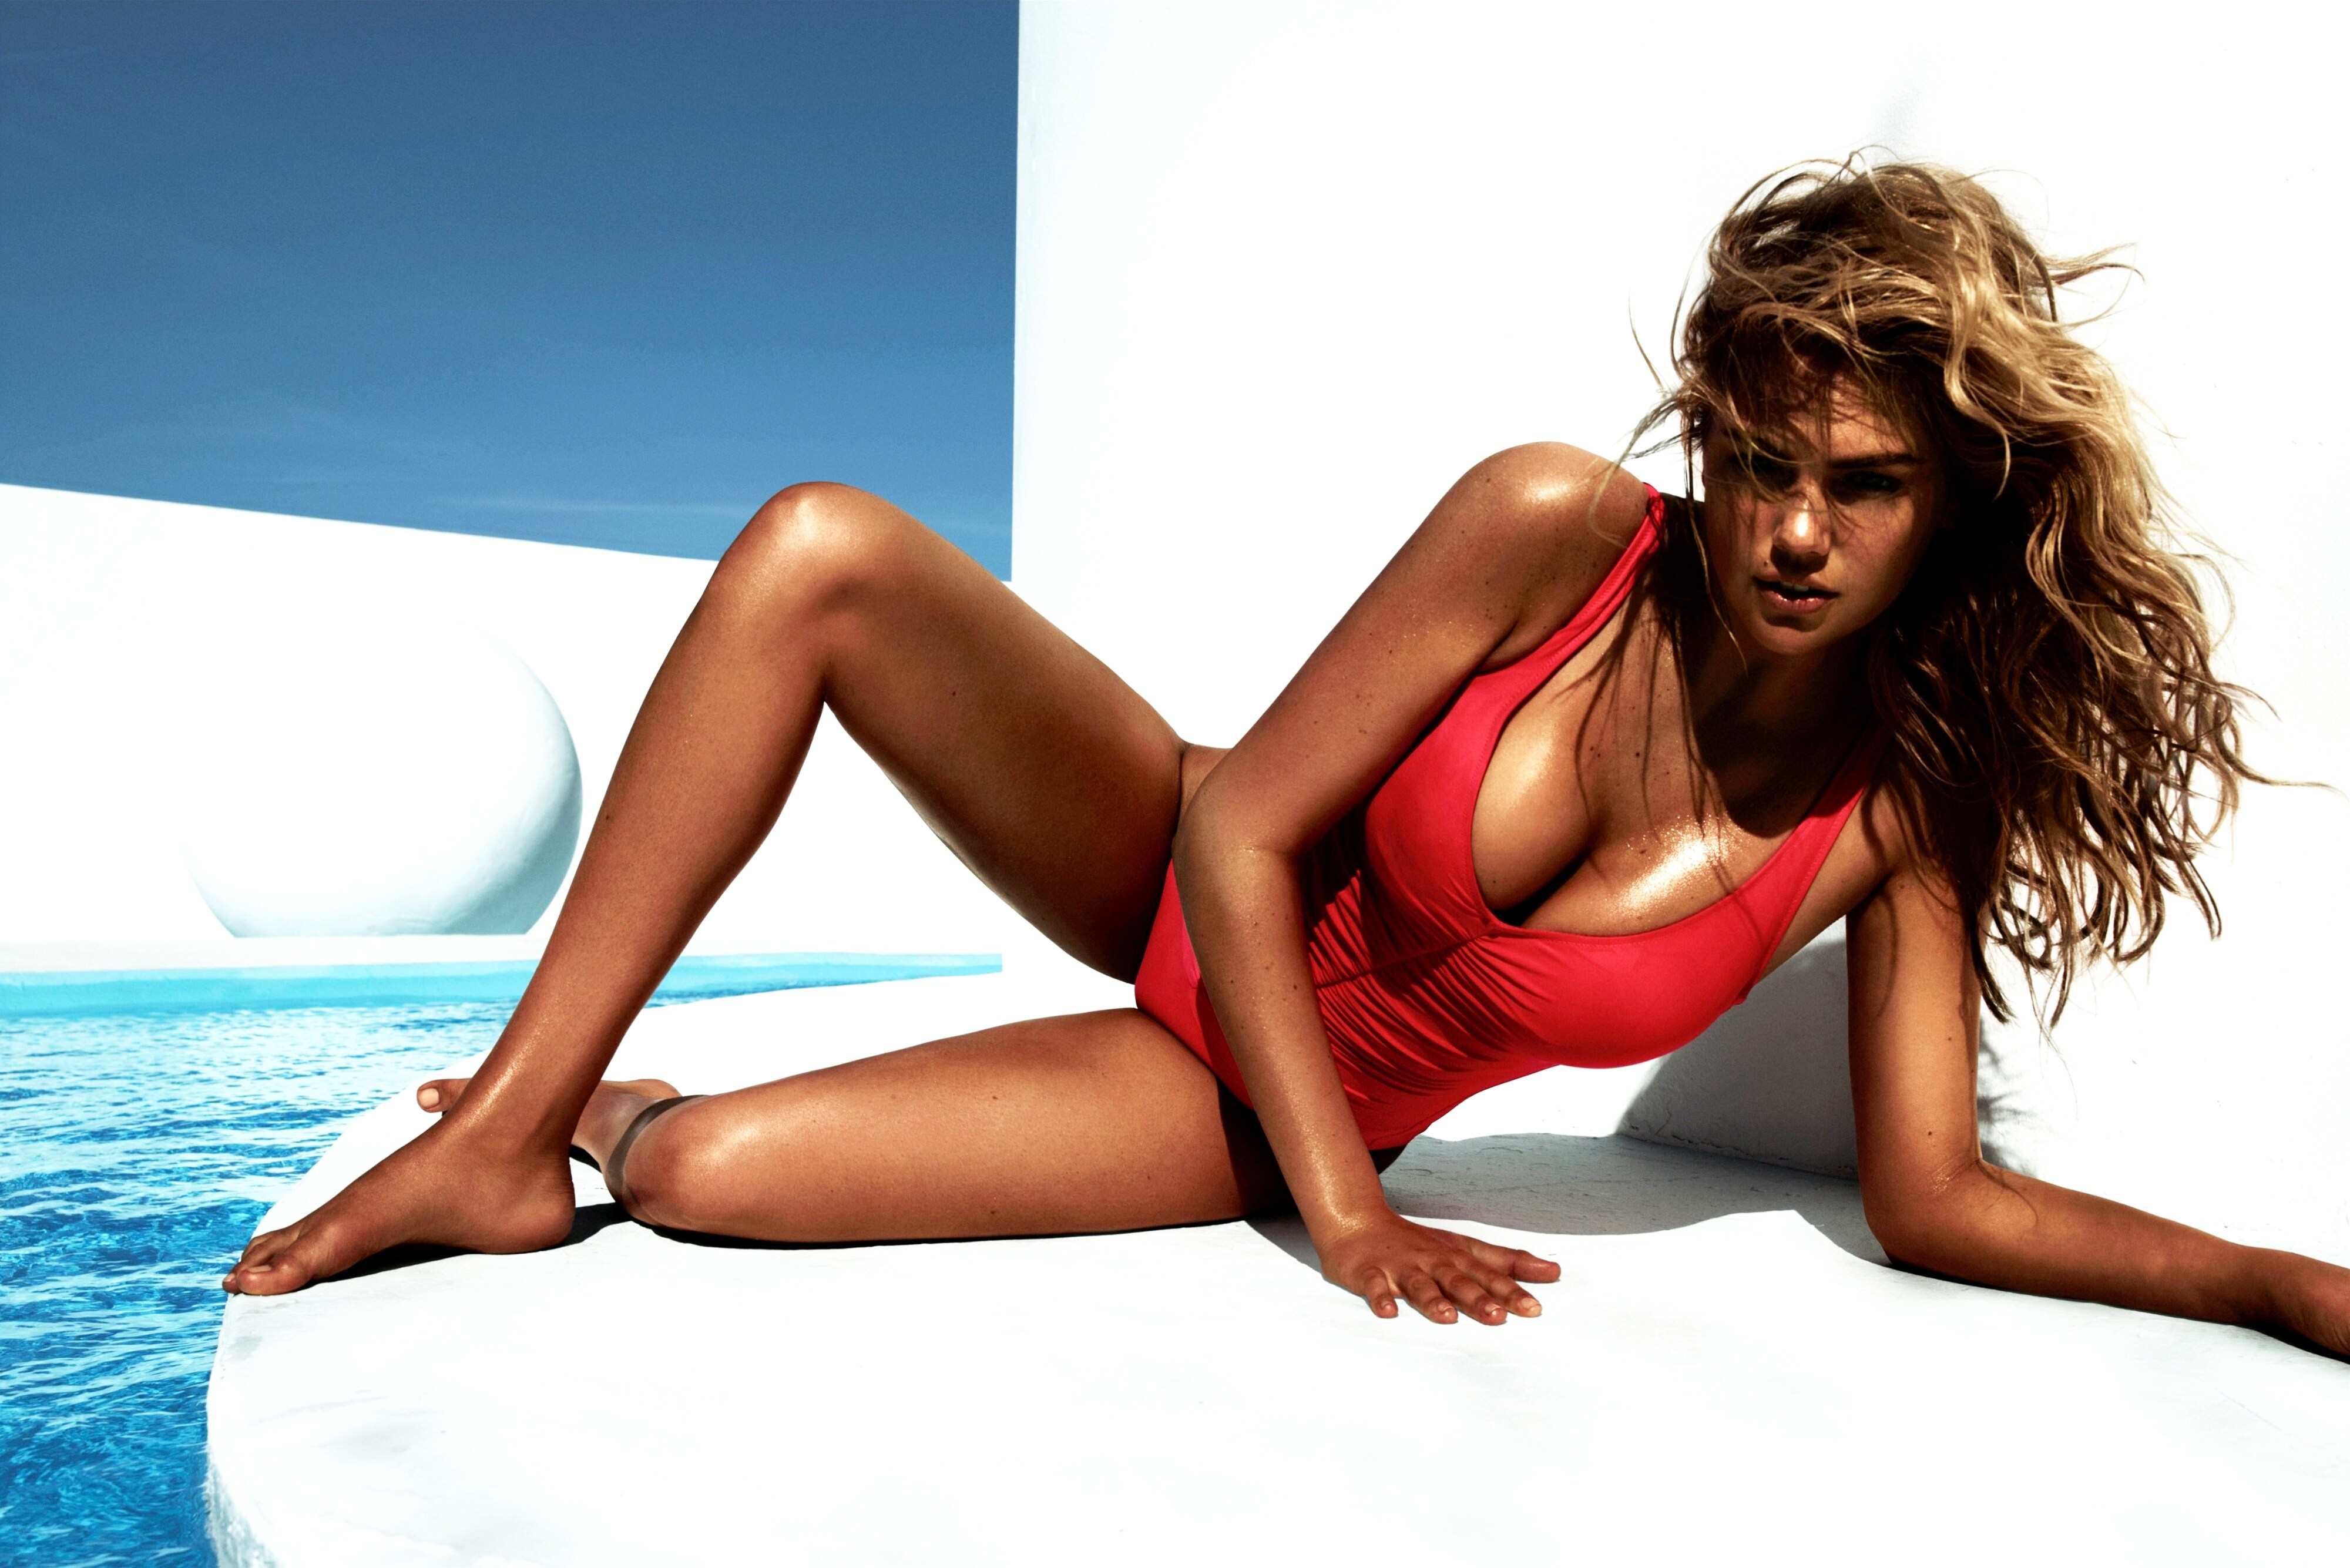 Kate upton 4k ultra hd wallpaper and background image 4000x2669 celebrity kate upton actress american blonde swimsuit wallpaper voltagebd Gallery